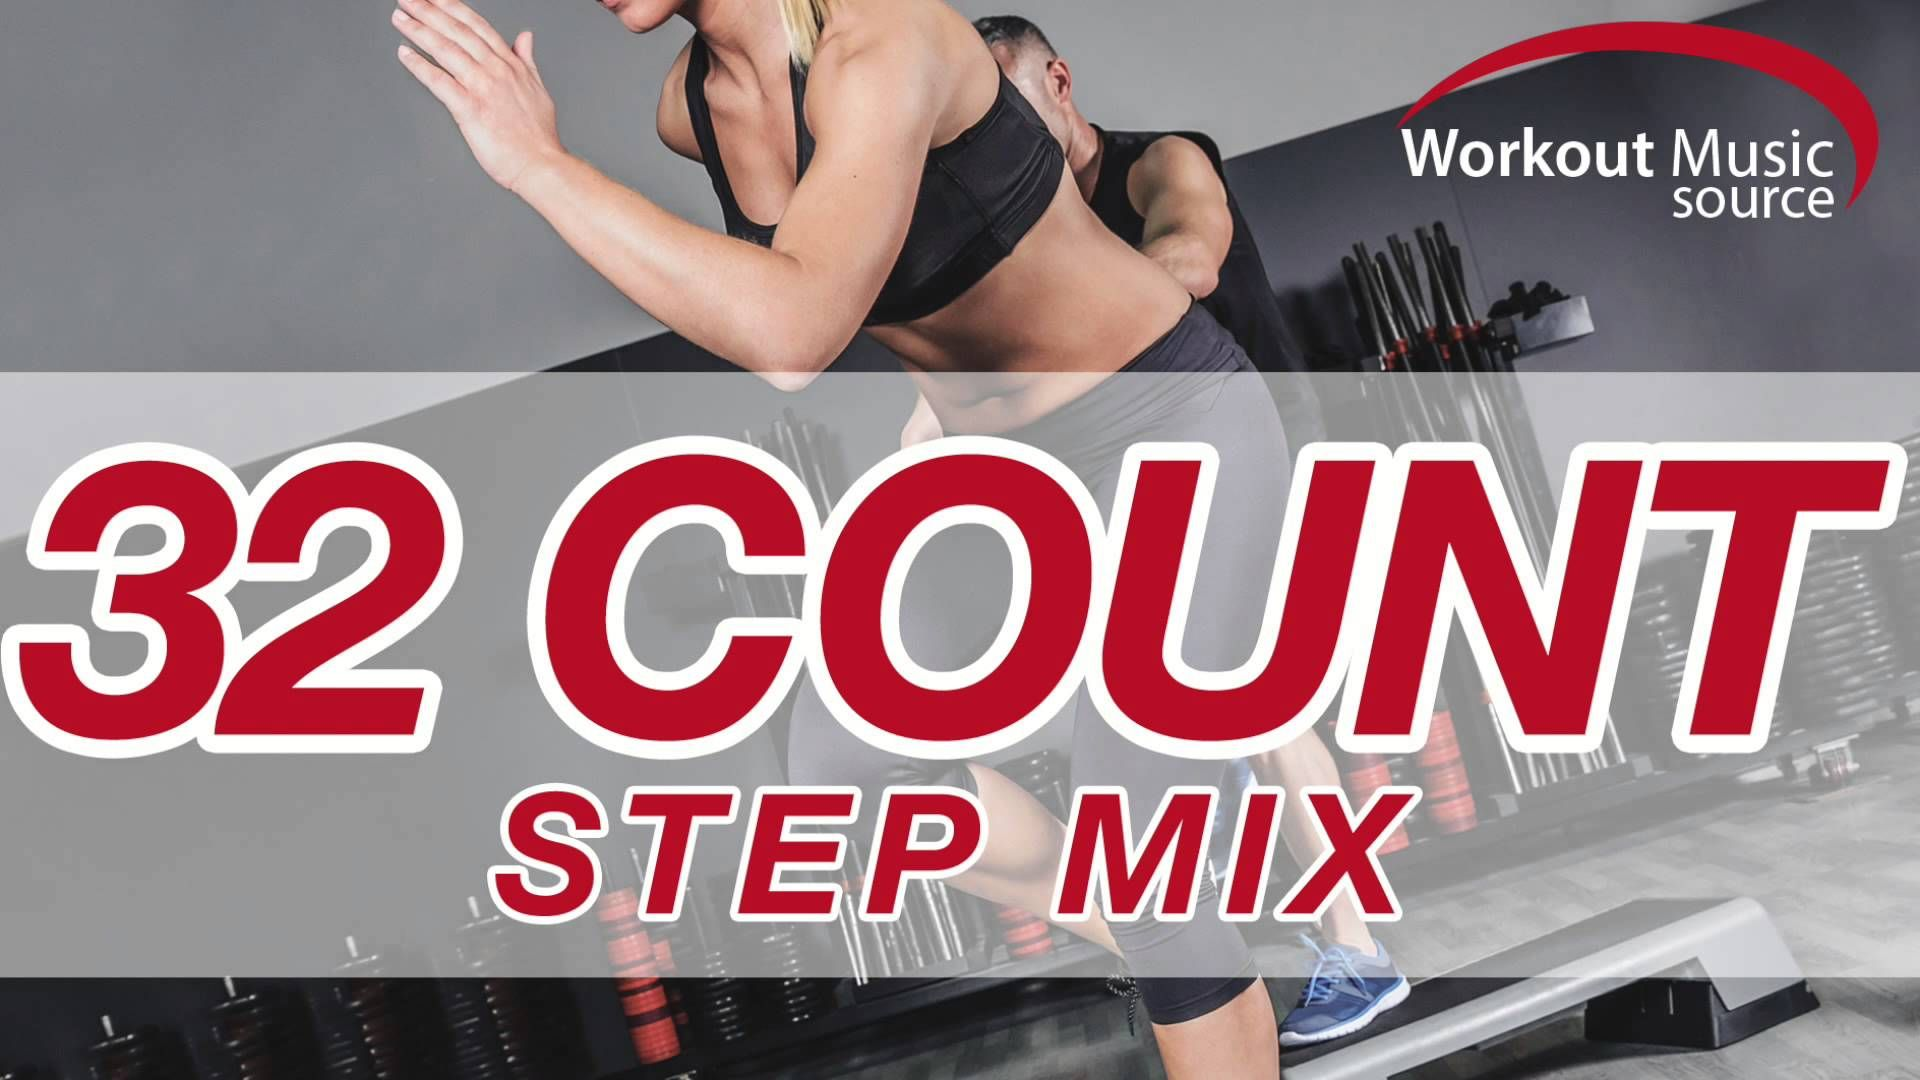 Workout Music Source // 32 Count Step Mix (132 BPM) | Workout Music